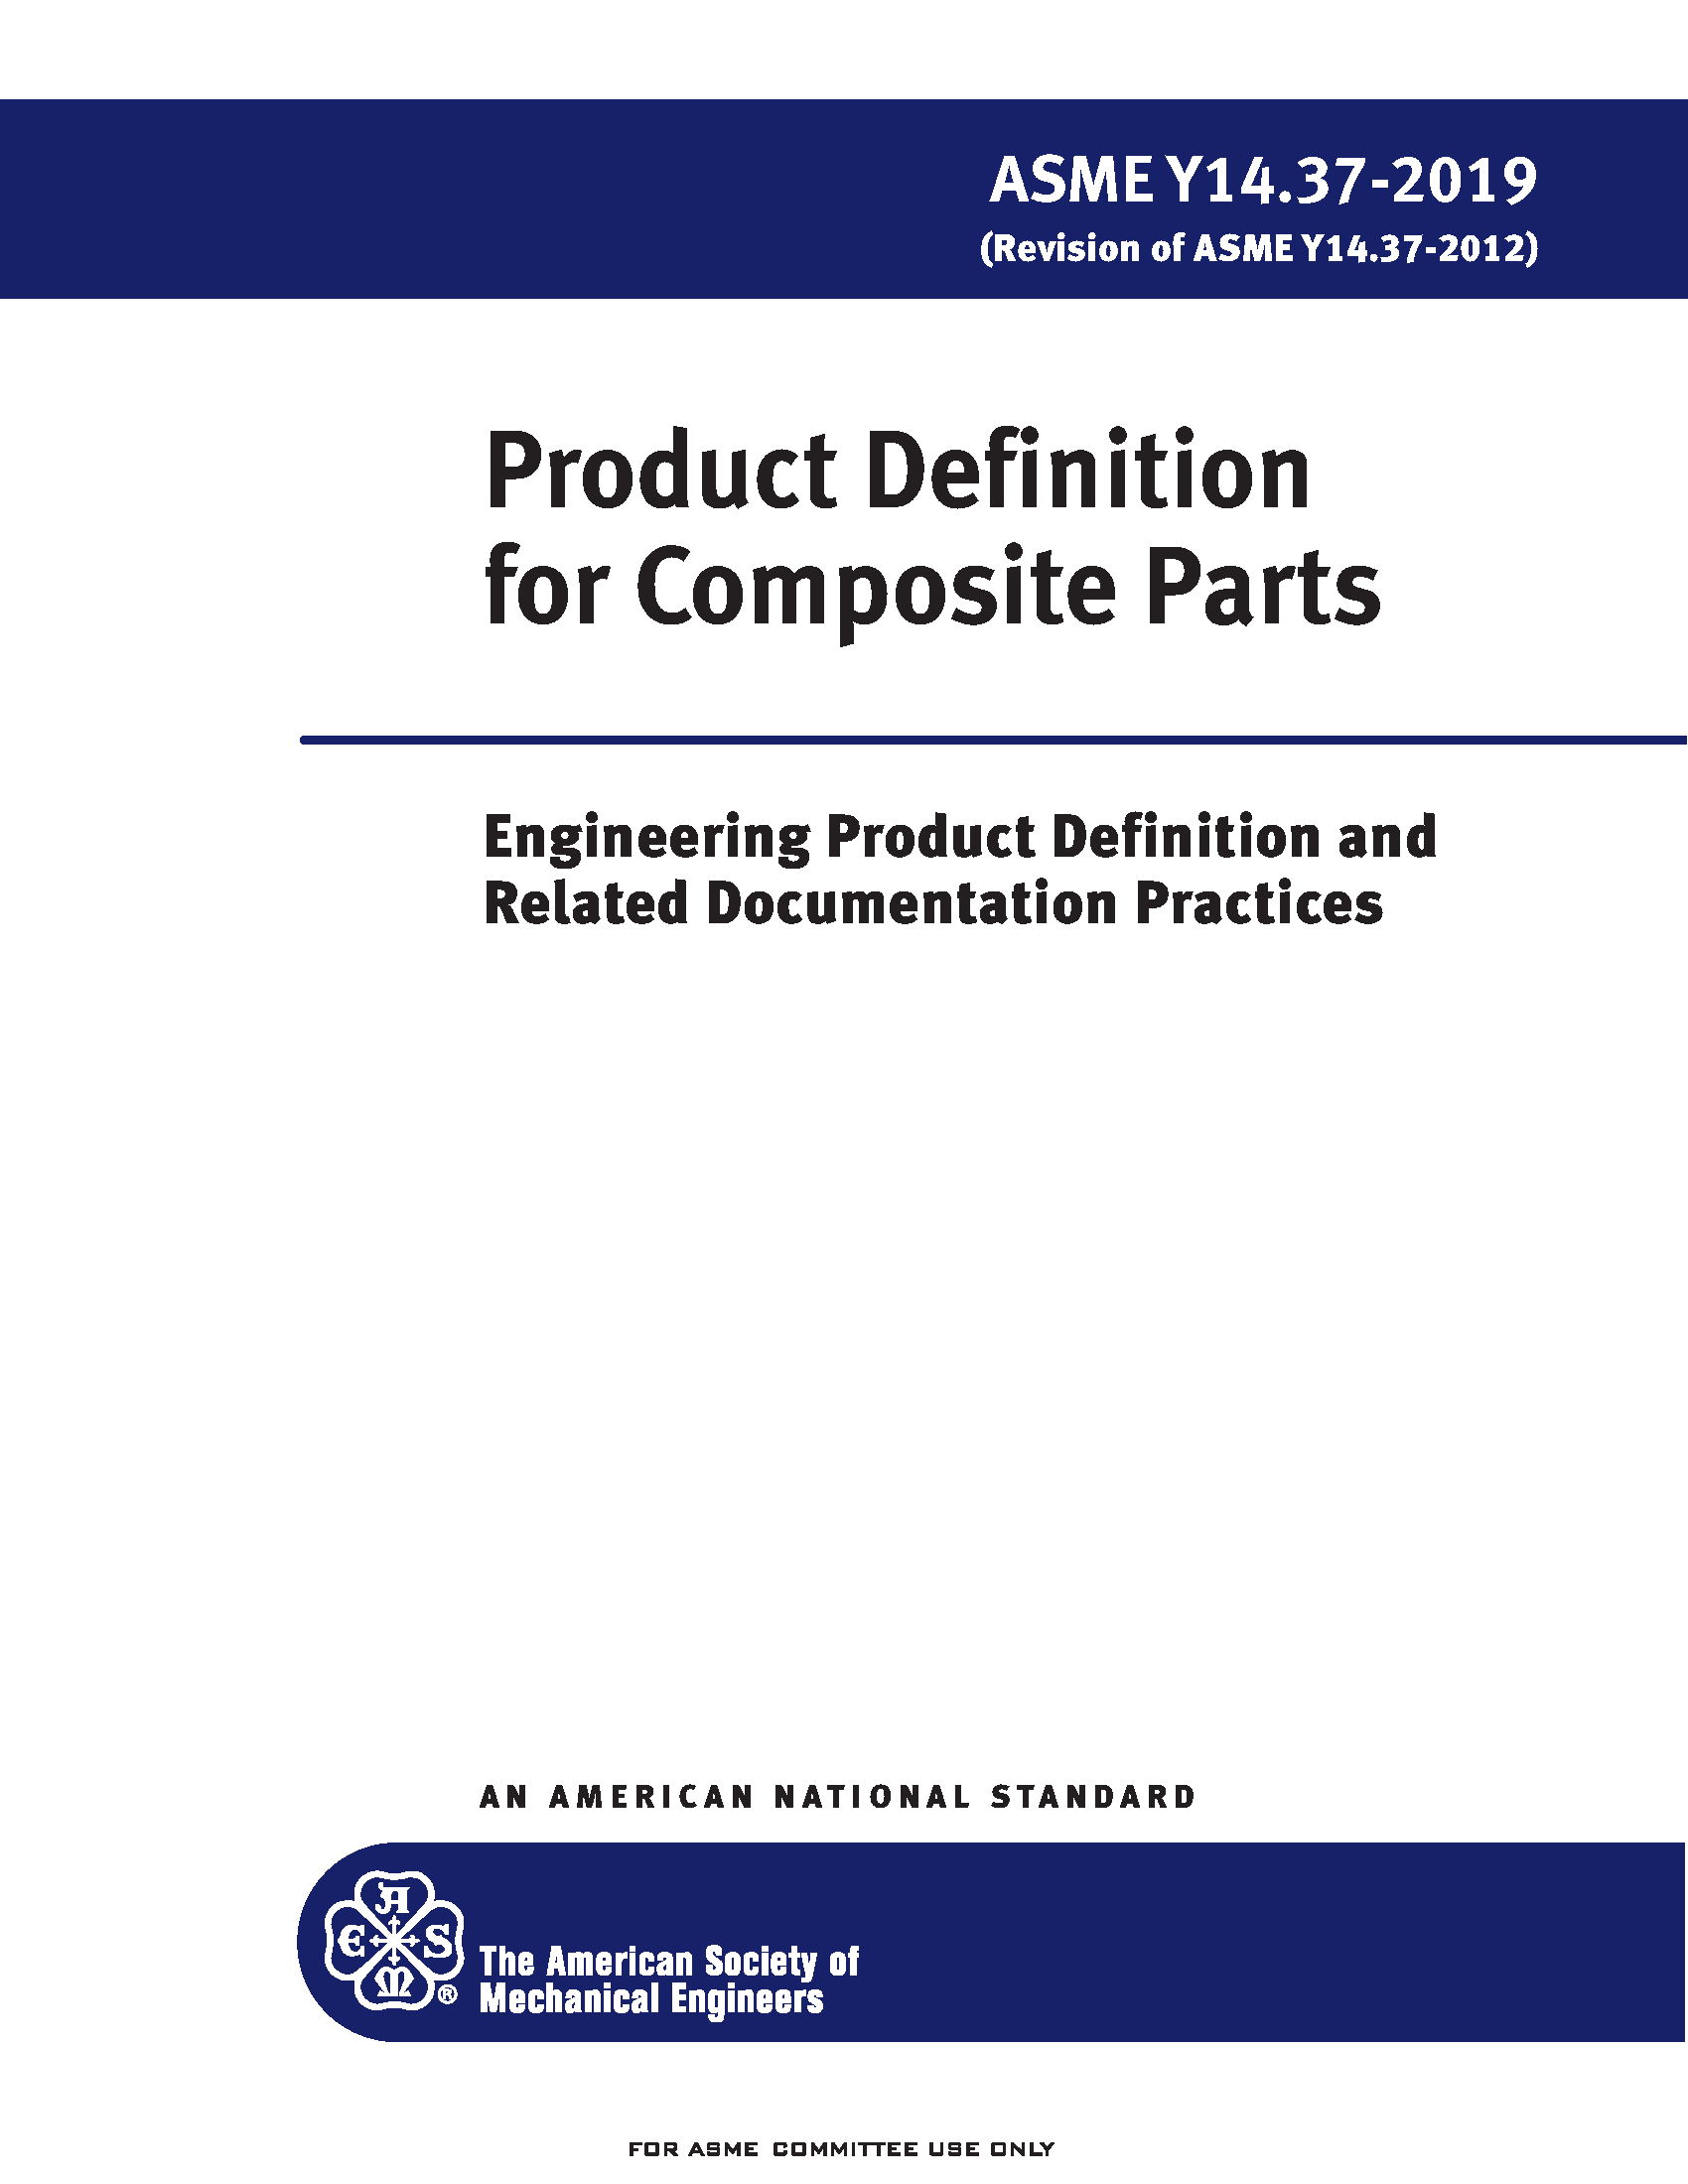 ASME Y14.37 2019 Product Definition for Composite Parts Standard